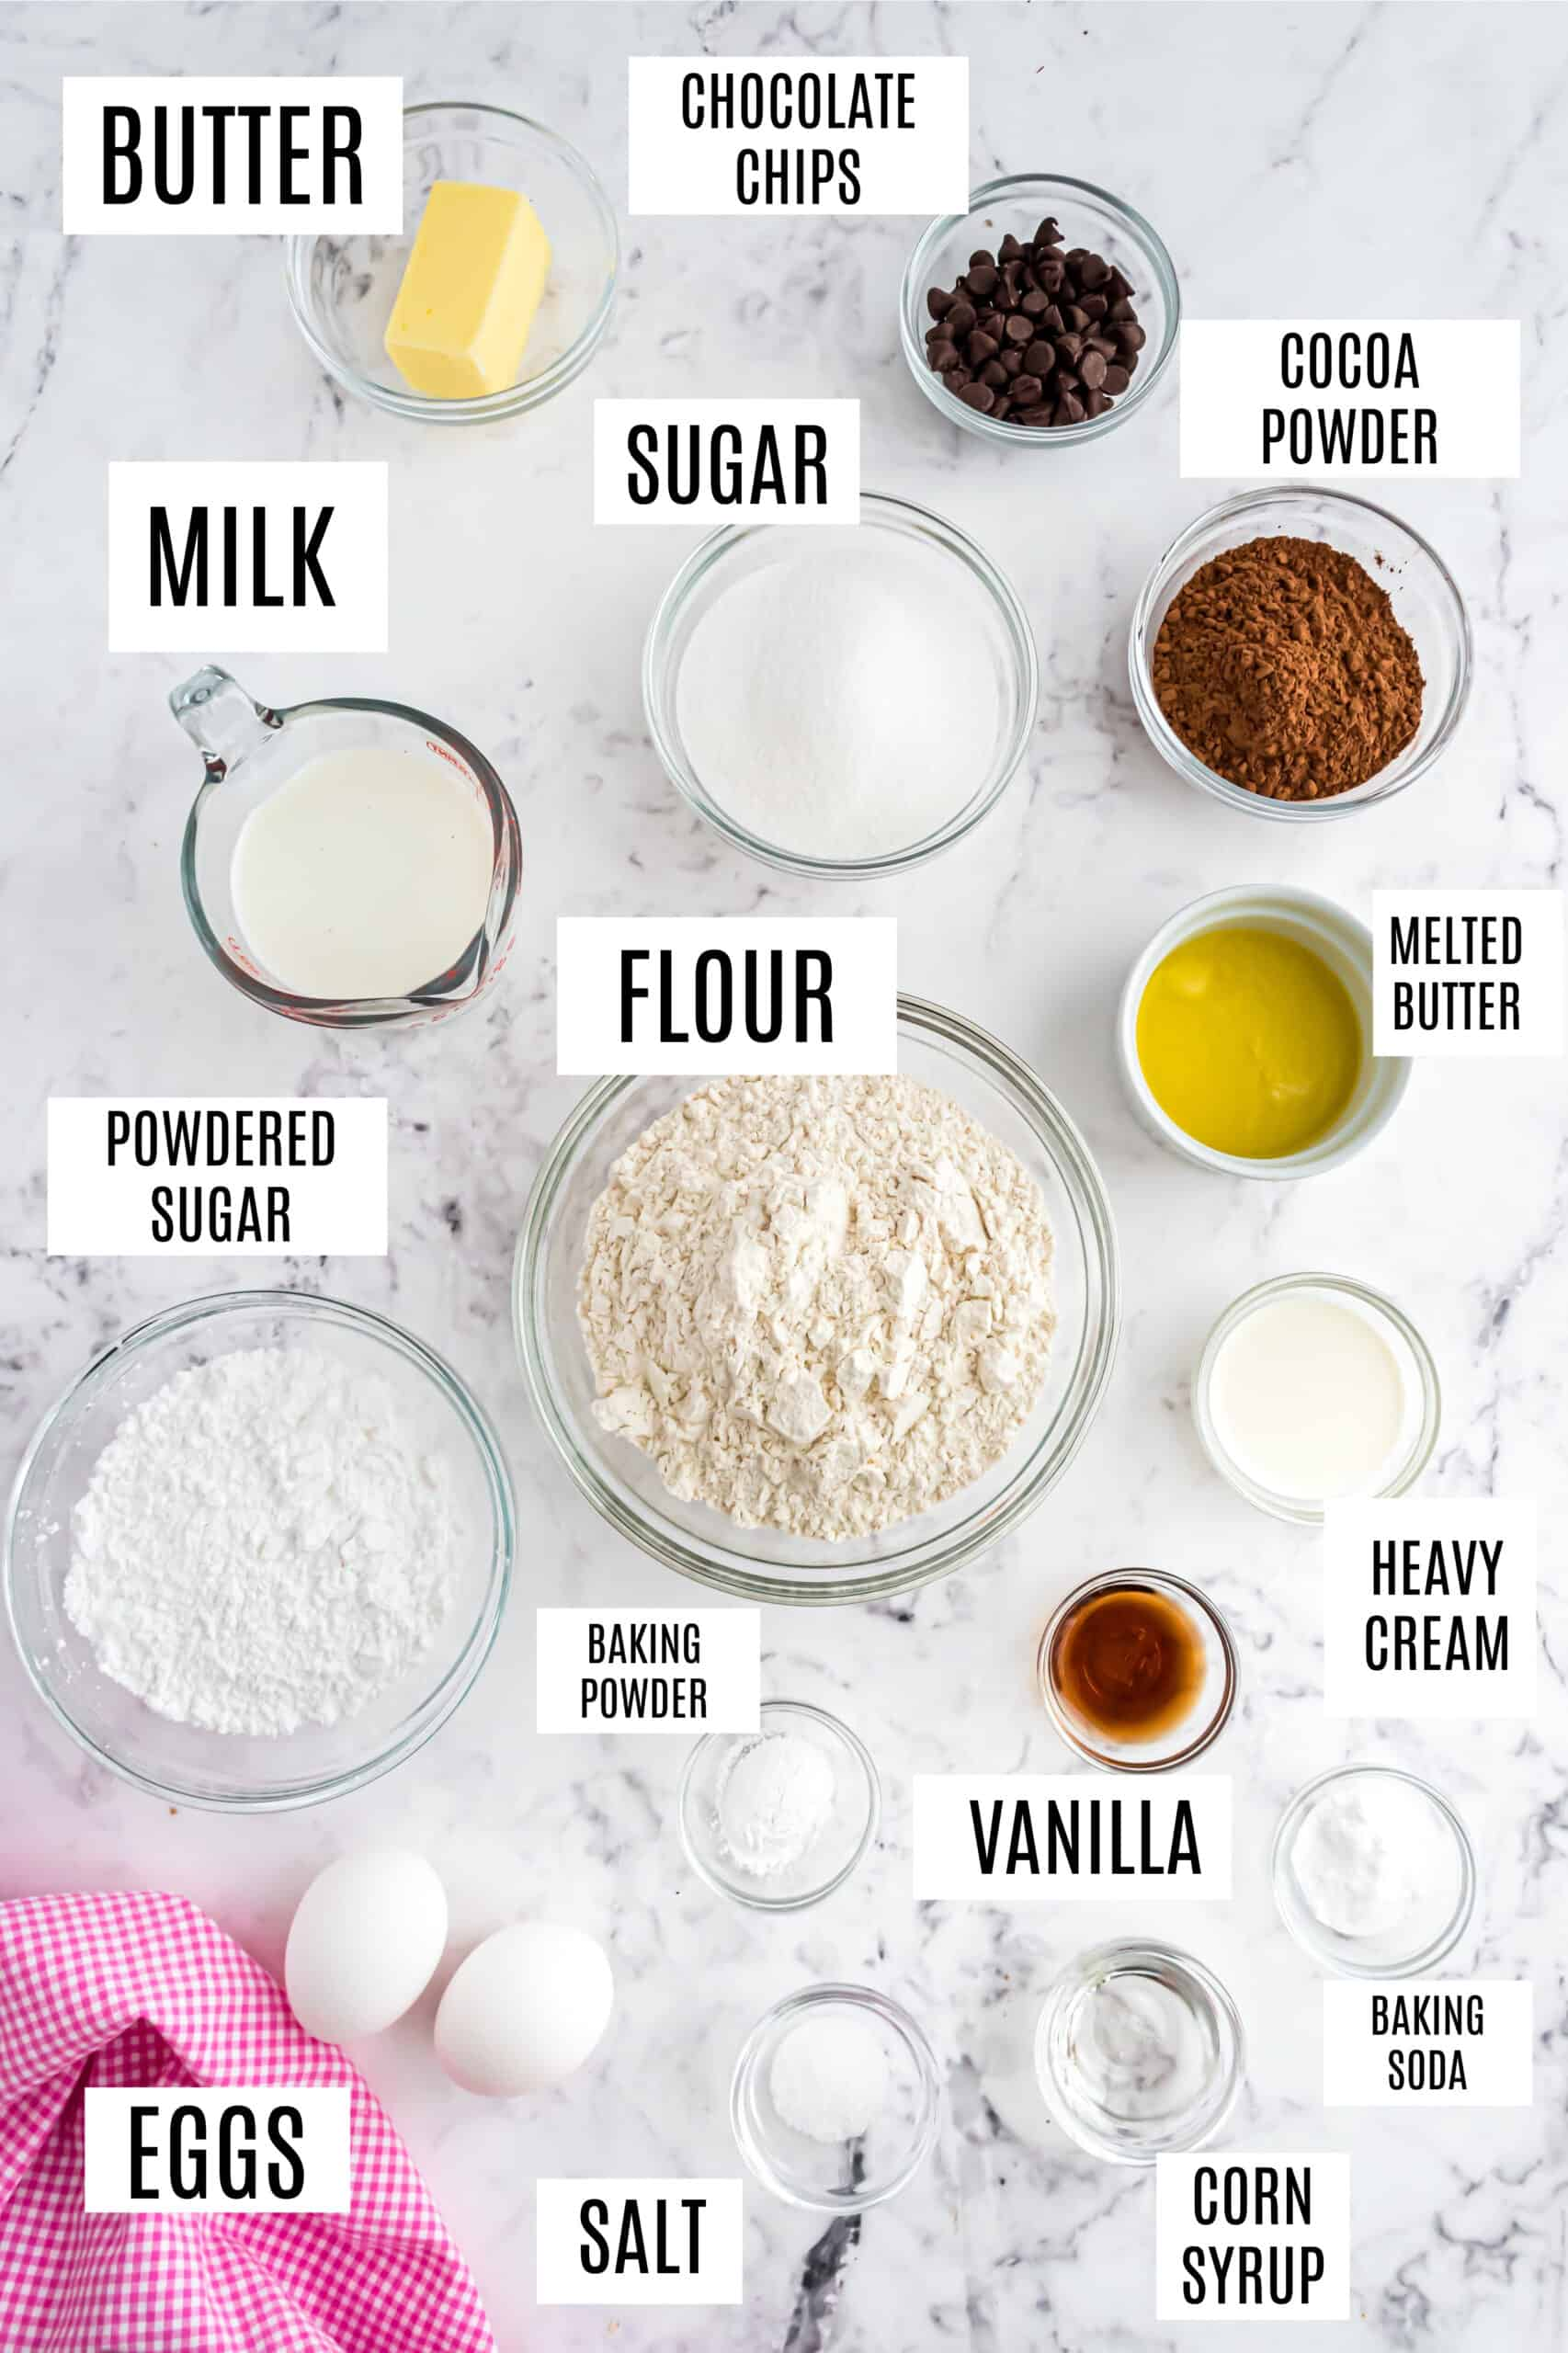 Ingredients needed to make baked chocolate donuts.